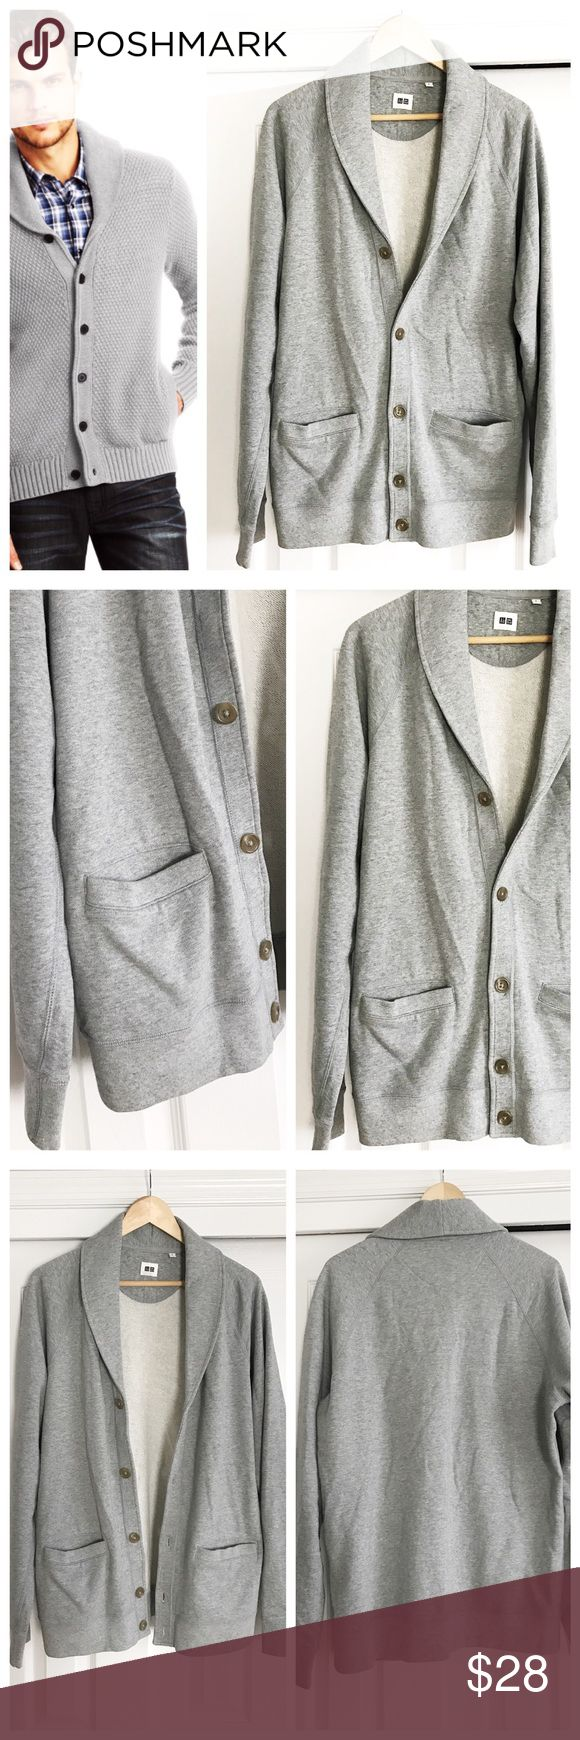 🎉HP🎉 MENS Uniqlo Grey Cardigan Collar Men's grey cardigan with collar and two pockets on front. Thin sweatshirt like material. Uniqlo size large 100% cotton. First photo on left not actual item just showing for styling!  🎉host pick🎉men's style party🎉4.7.2017🎉 Uniqlo Shirts